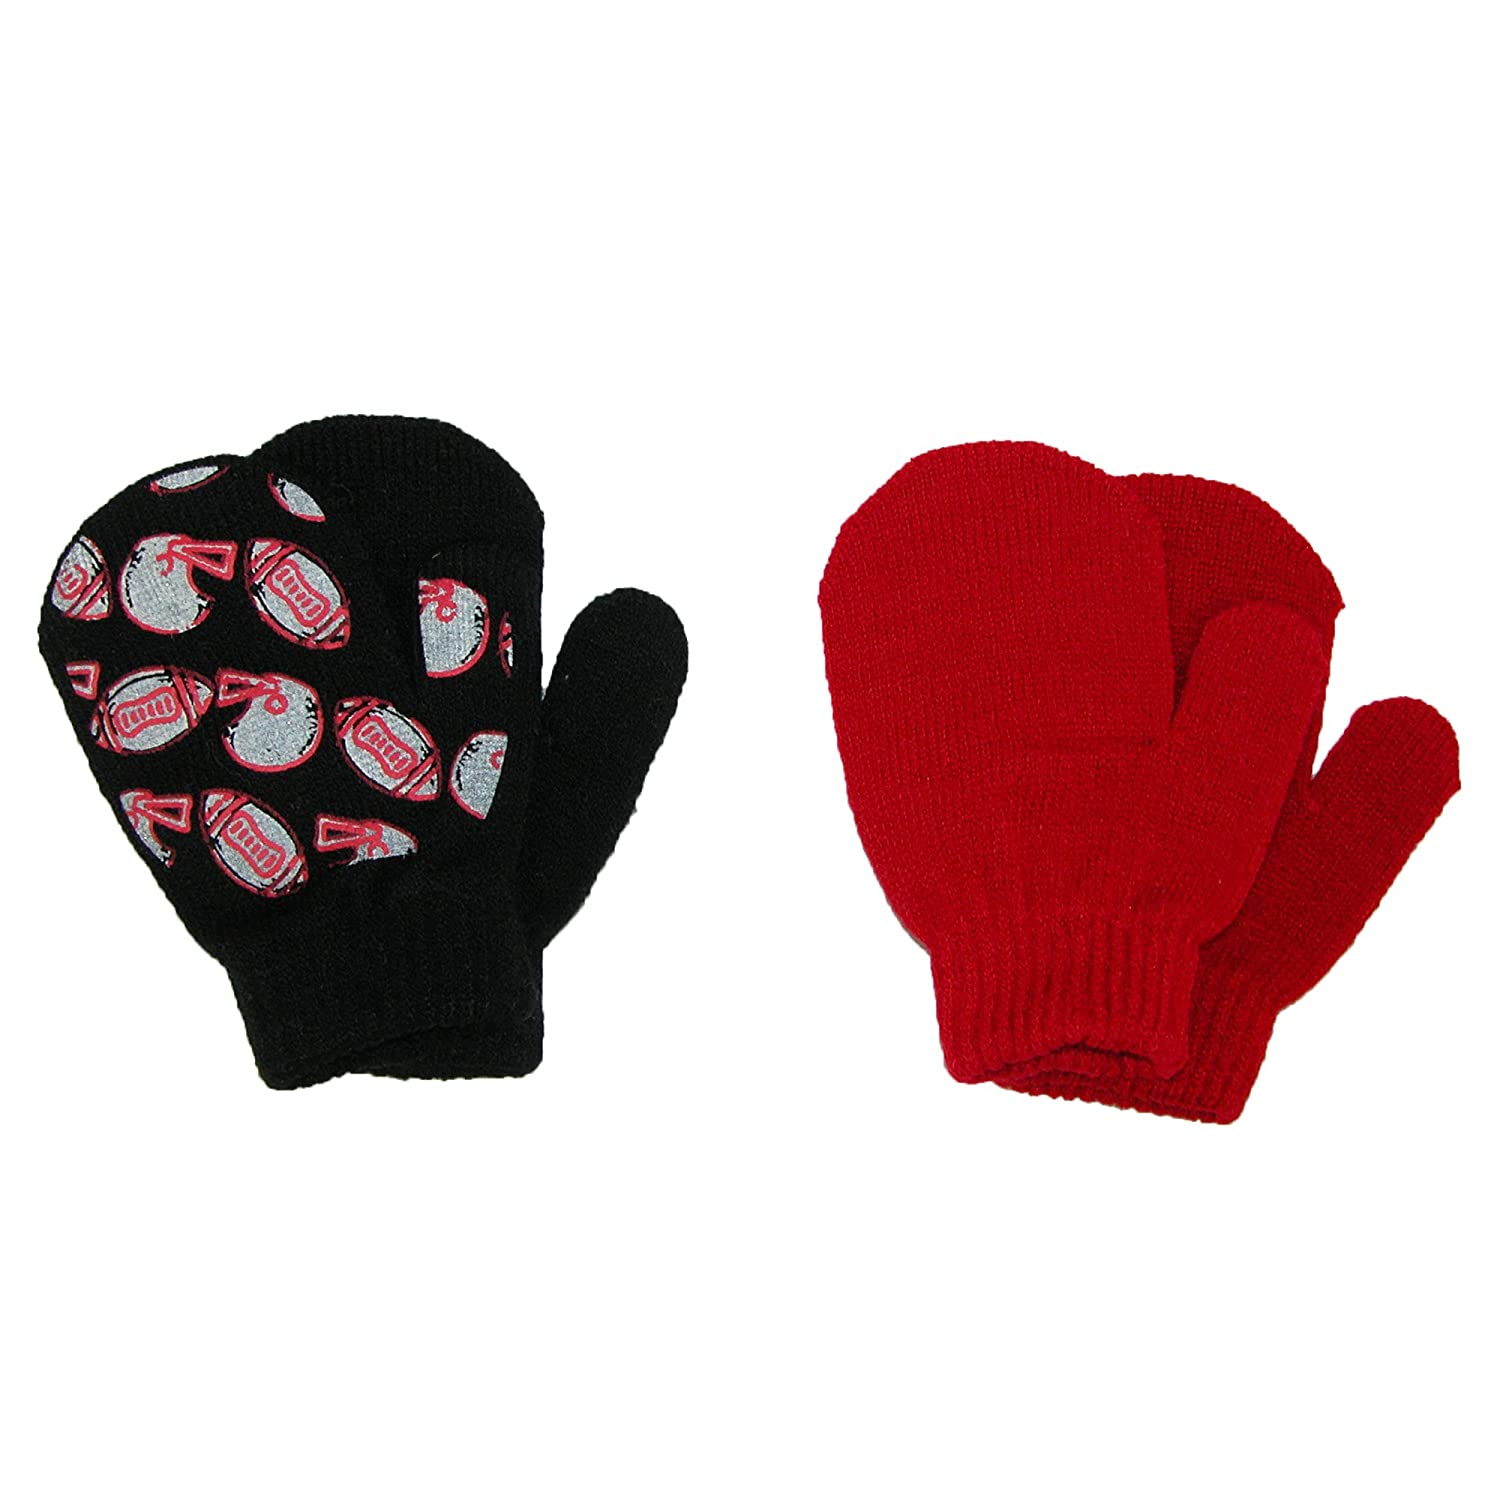 Aquarius Toddlers 2T / 4T Football and Solid Mittens (Pack of 2), Black